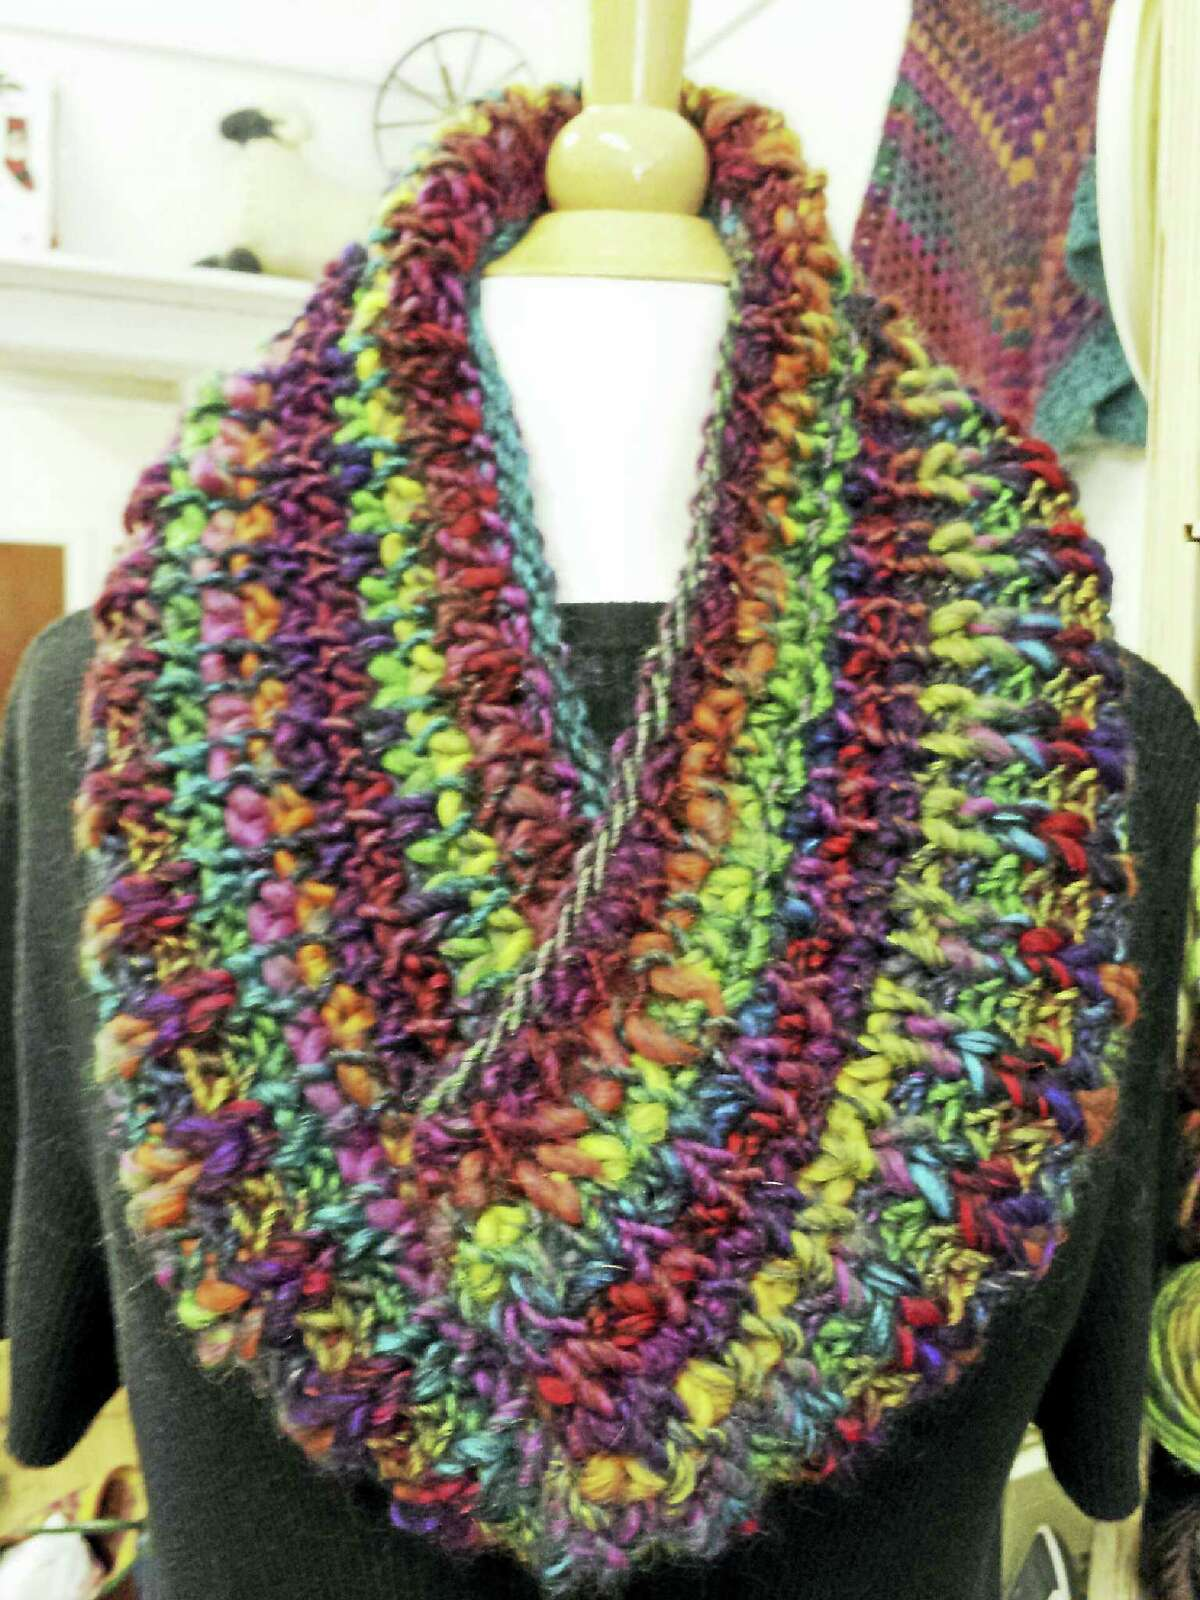 Photo by Ginger Balch You can learn to knit this easy, warm and cozy fisherman's rib cowl at In Sheep's Clothing on Sunday.